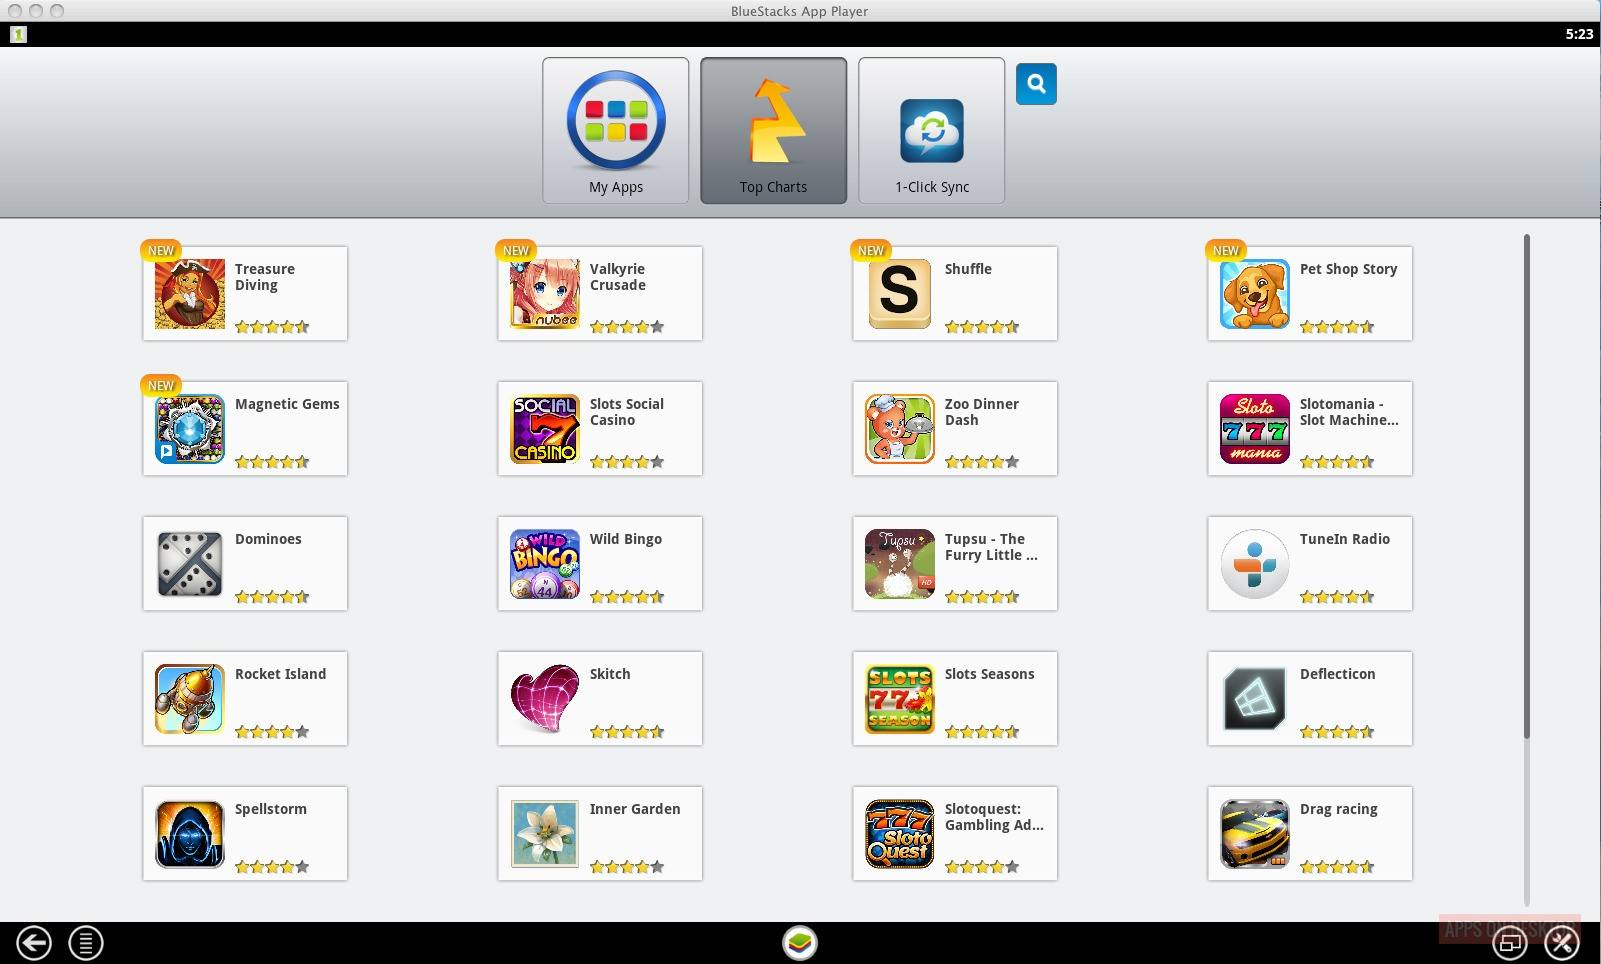 pantallazo BlueStacks_6